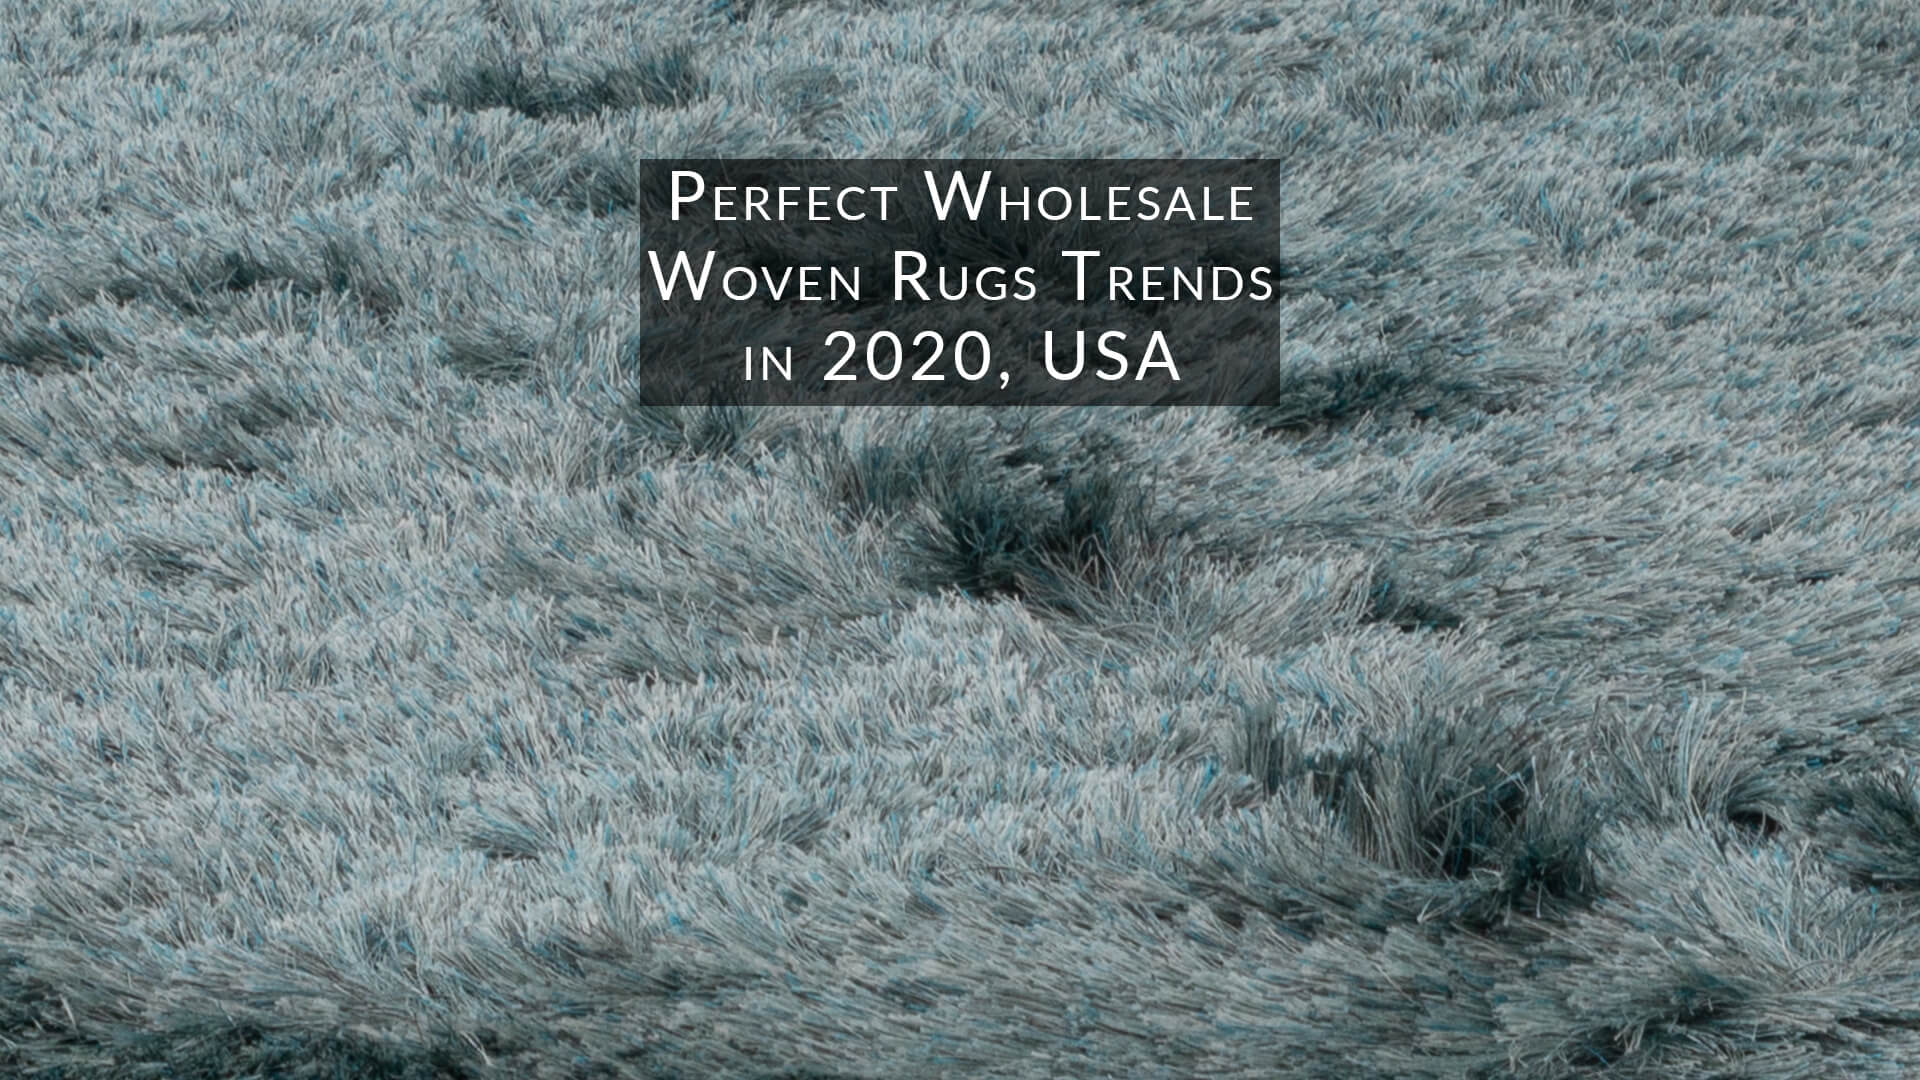 Perfect-Wholesale-Woven-rugs-trends-in-2020-USA